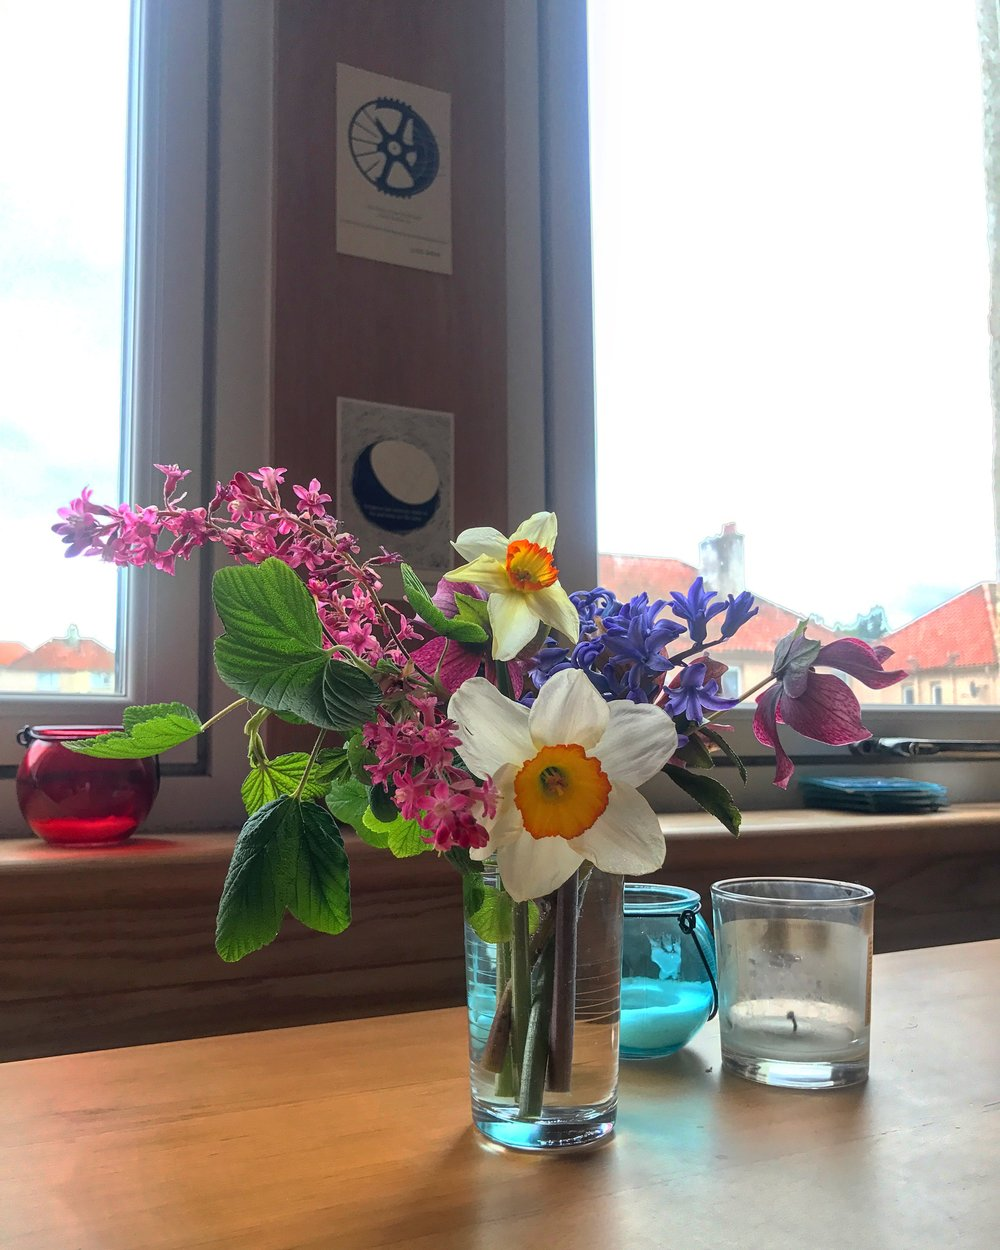 Flowers from my garden that the last tenant planted.